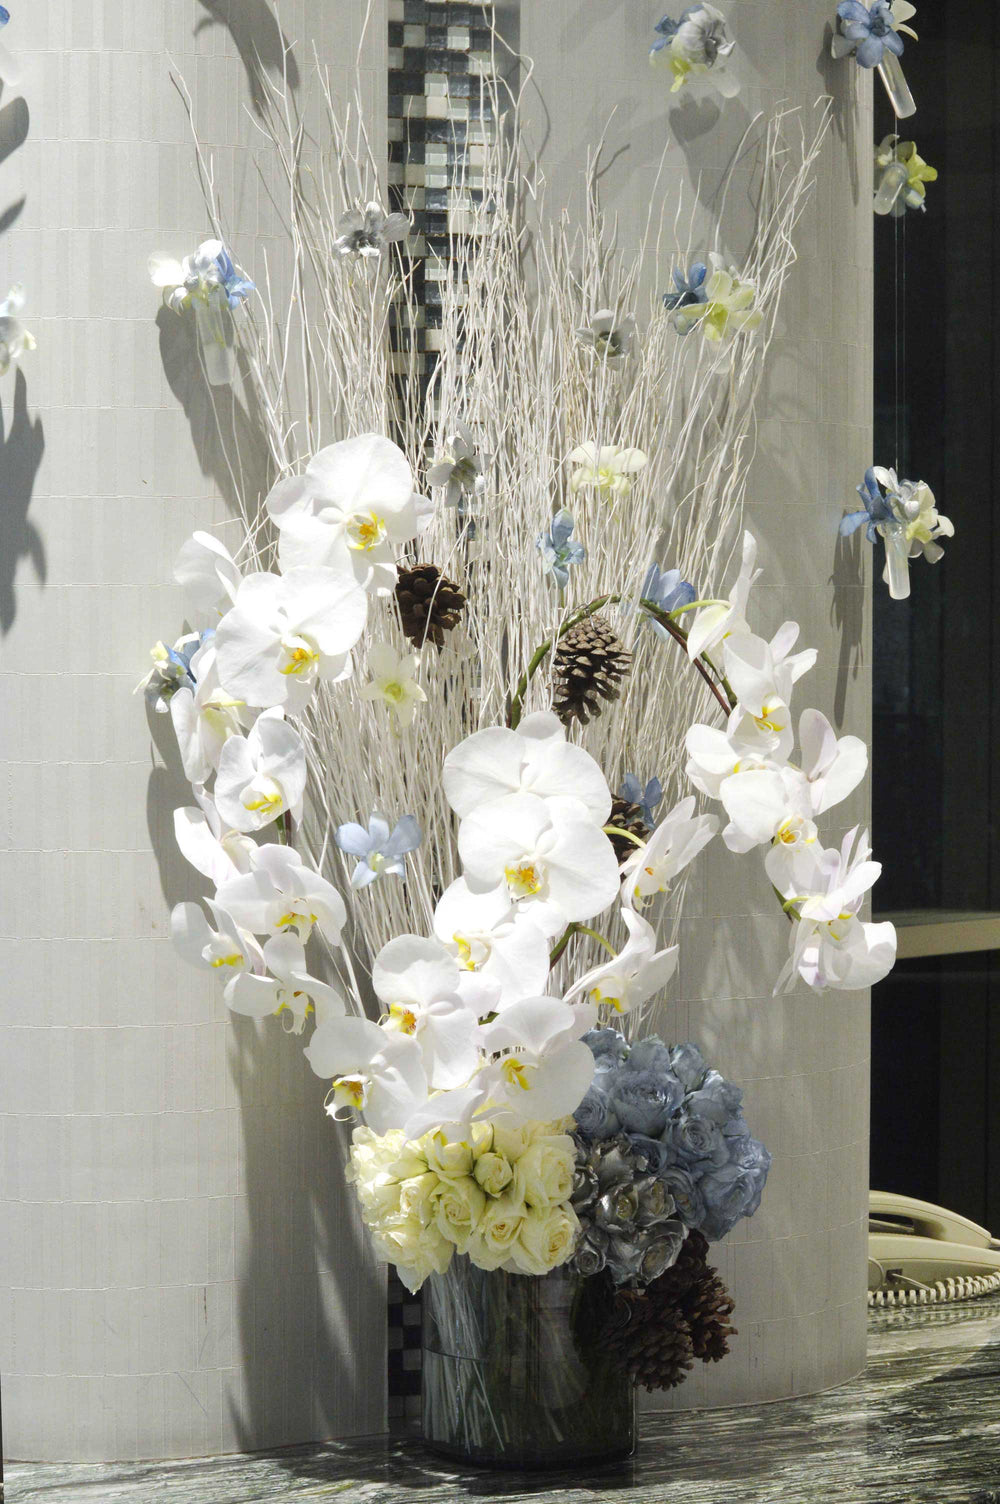 Hotel H2O flowers decoration